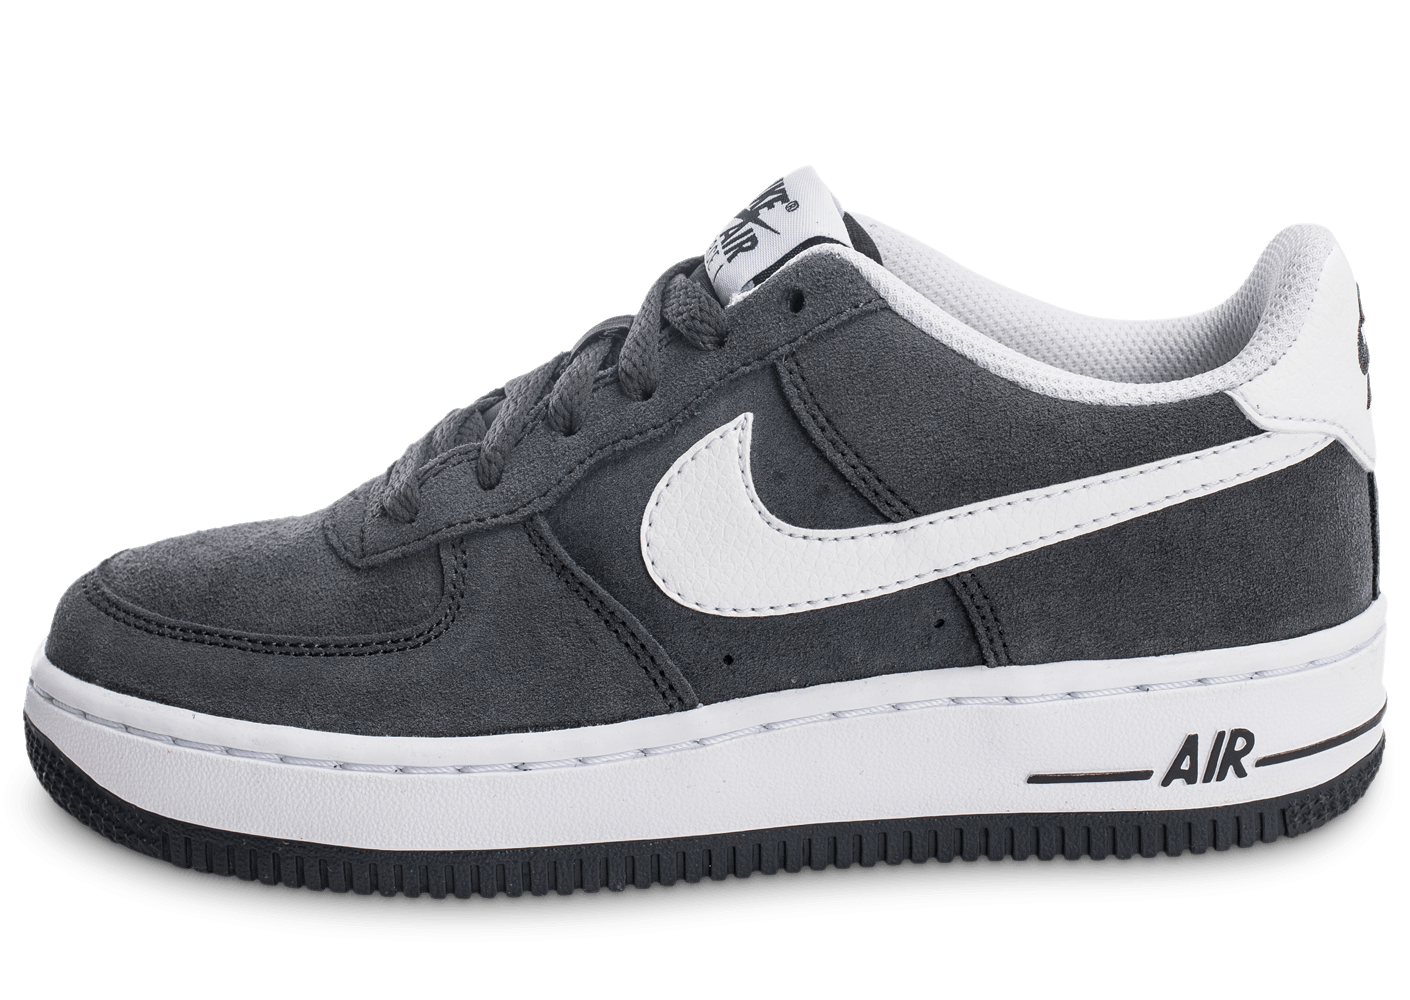 nike air force 1 suede junior grise chaussures enfant chausport